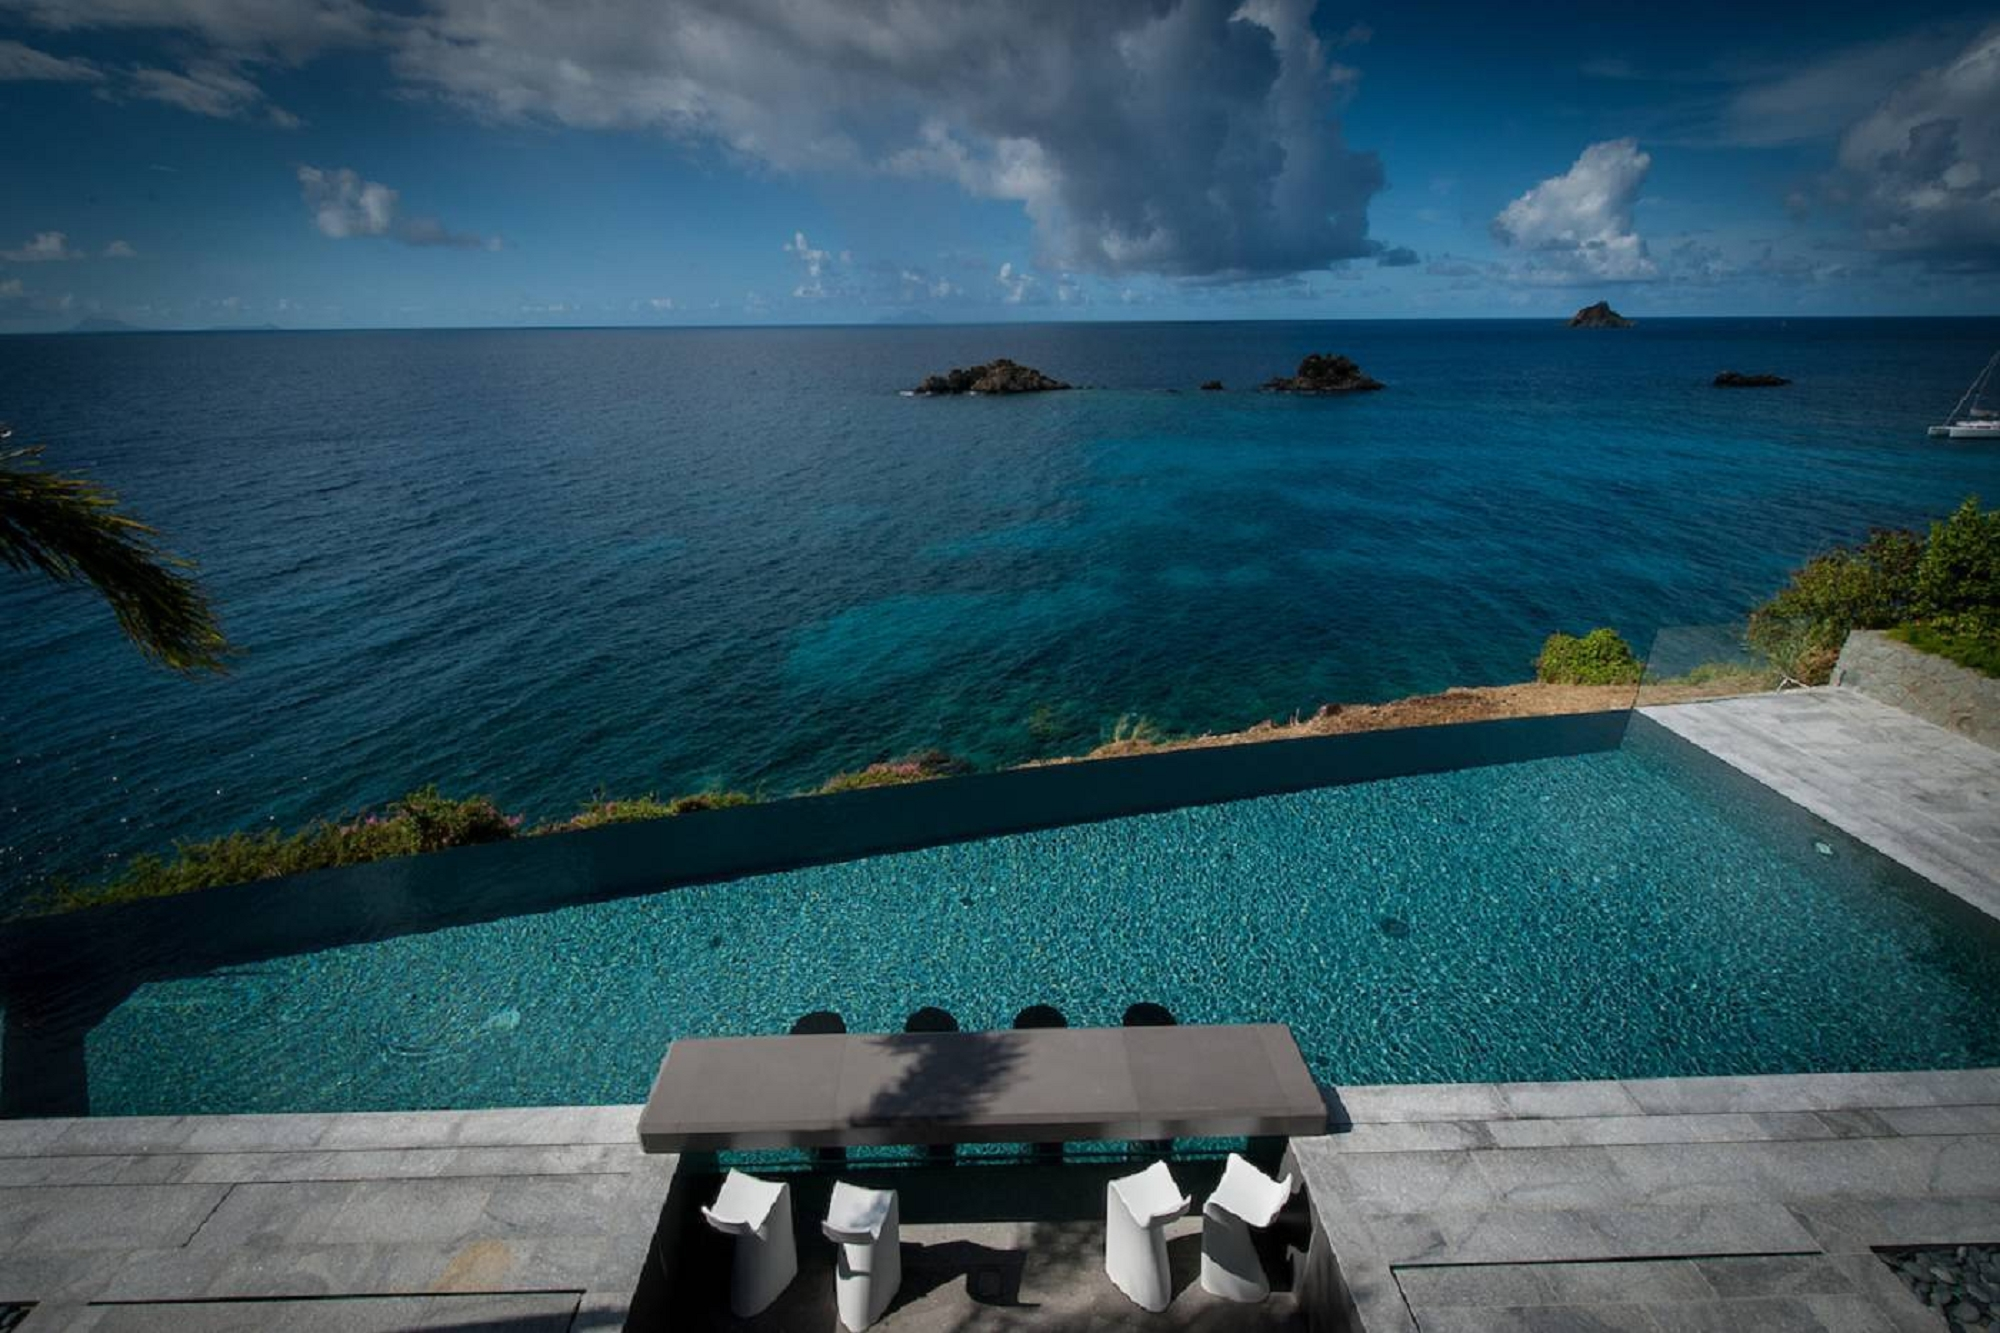 For super rich ultra luxury real estate properties homes, most expensive houses, rent unique penthouse apartment and ultimate villa in St Barth - Gustavia St Barth St. Barthélemy for rent holiday